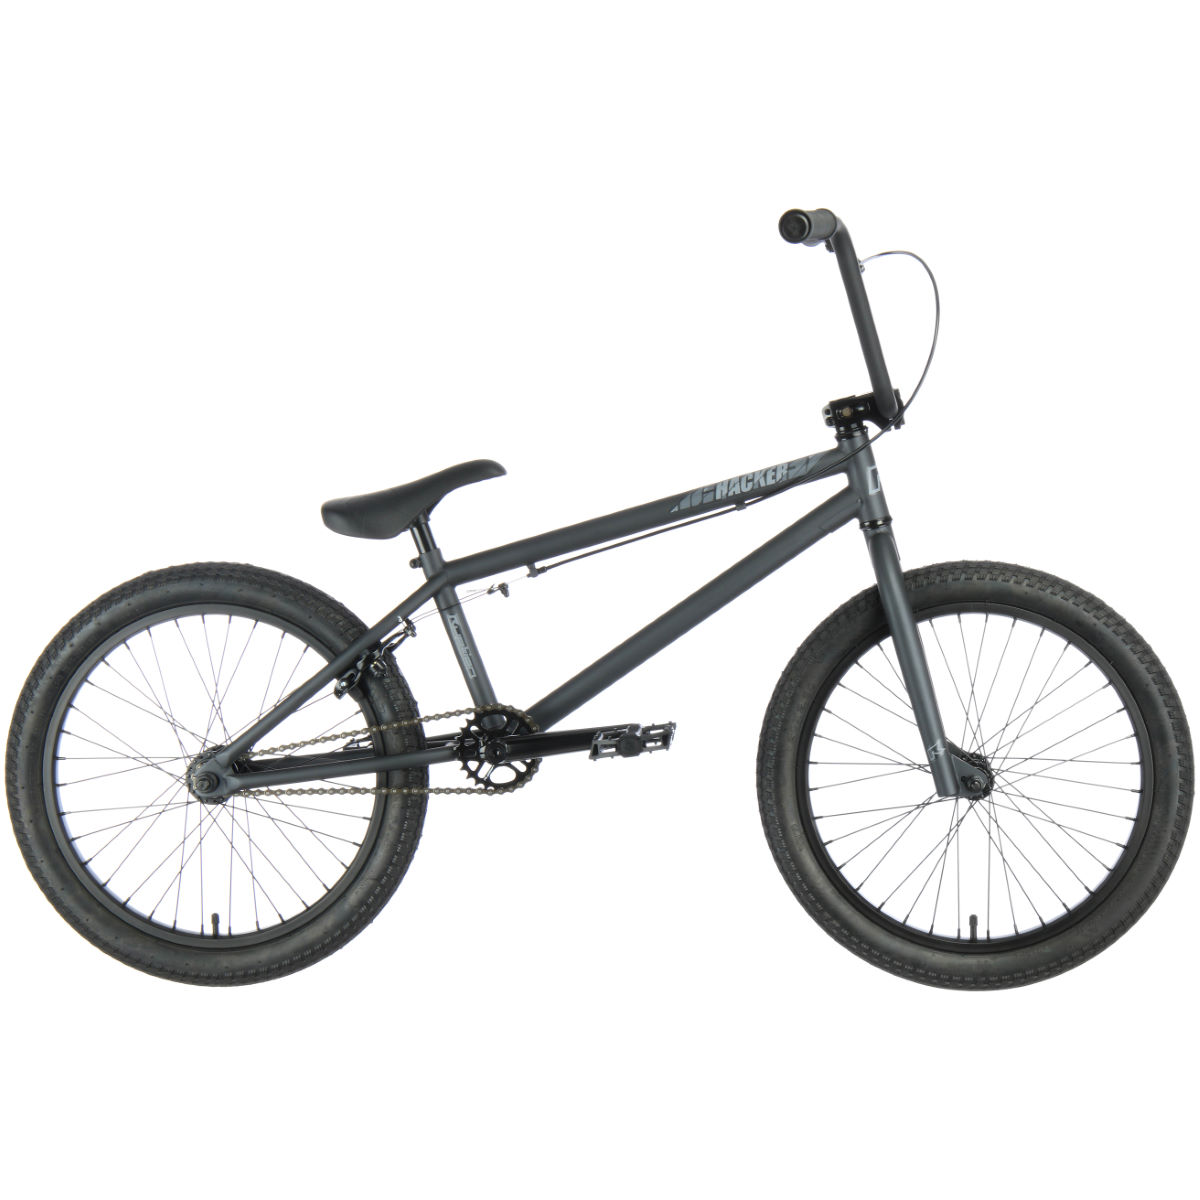 Ruption Hacker BMX Bike (2019) - Bicicletas de BMX Freestyle